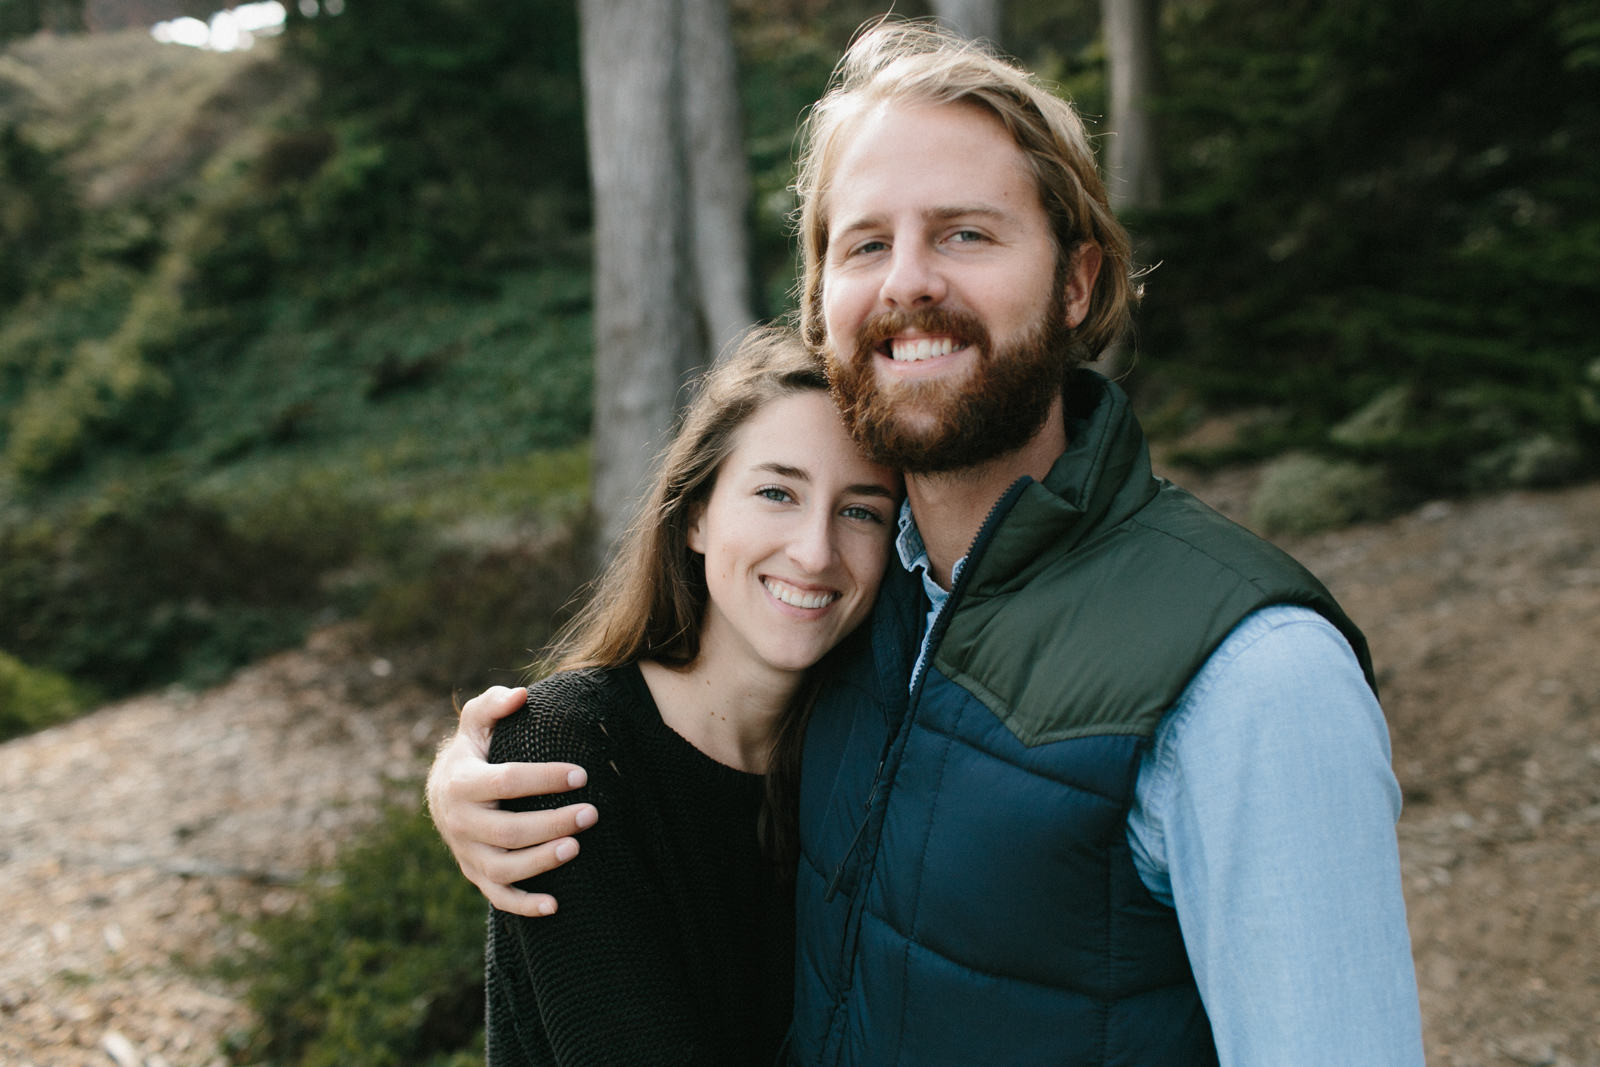 San Francisco Engagement Photography by Bay Area Wedding Photographer Mae Stier-009.jpg